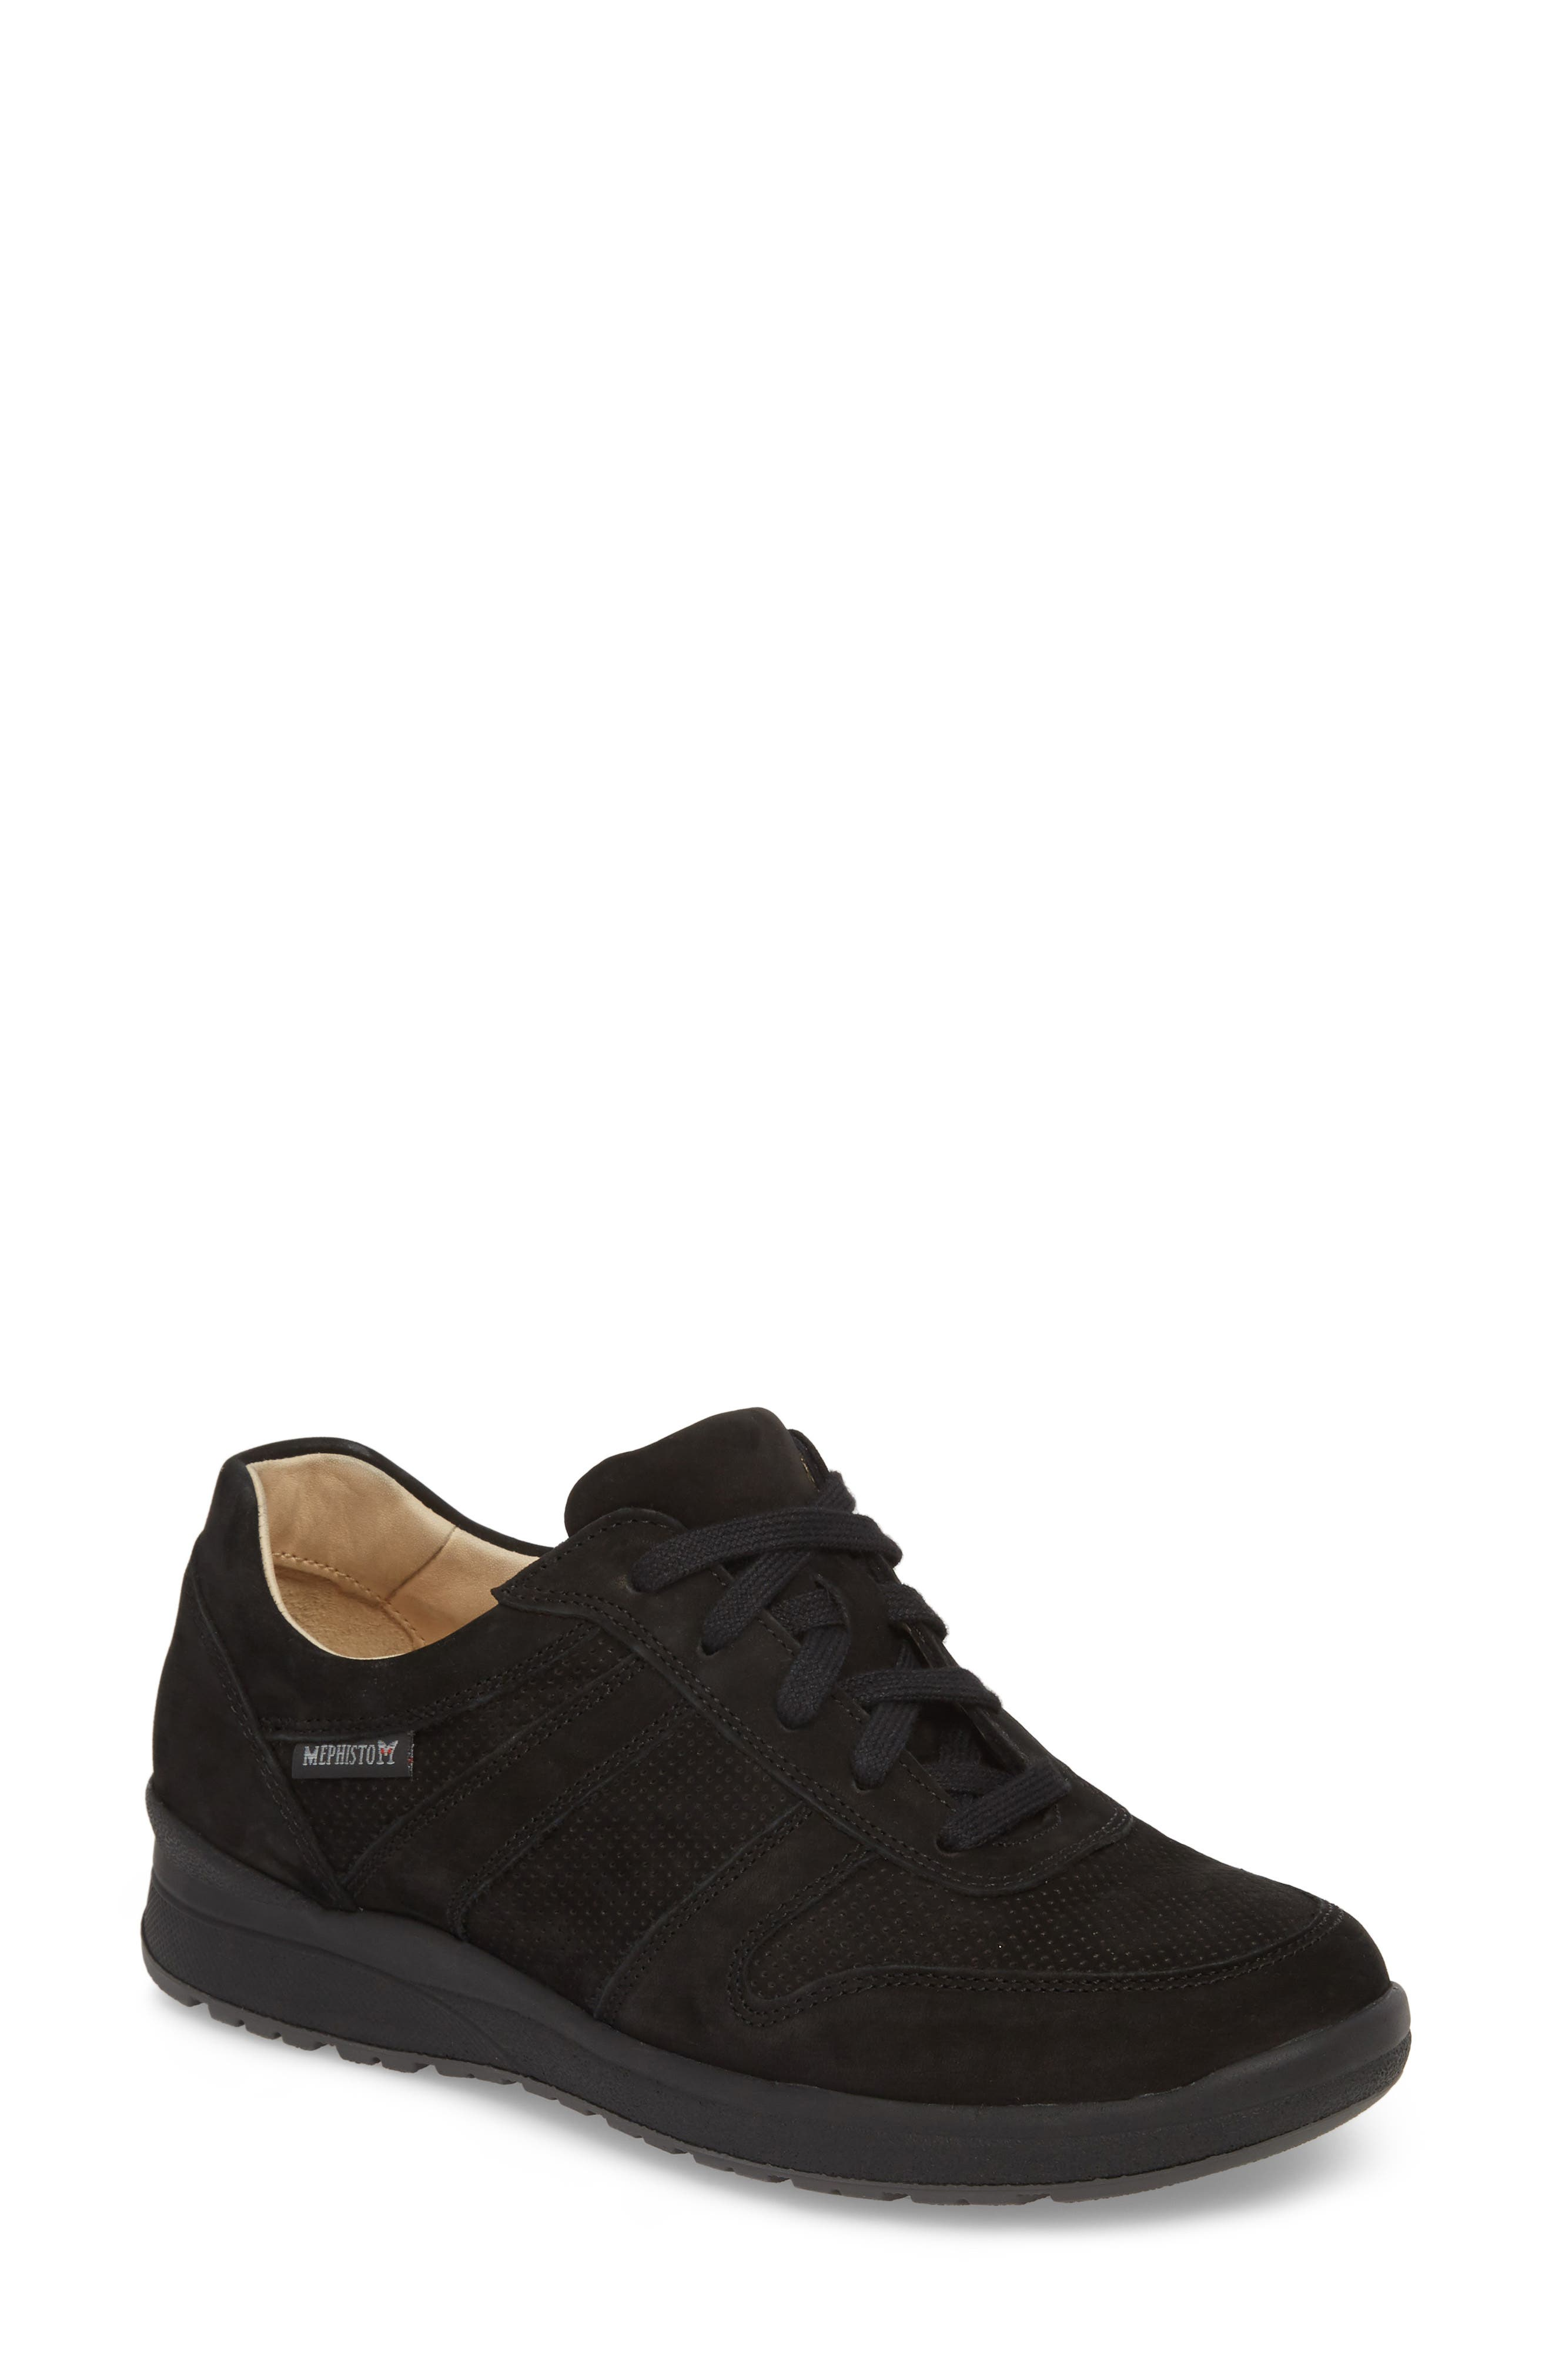 MEPHISTO Rebecca Perforated Sneaker, Main, color, 002